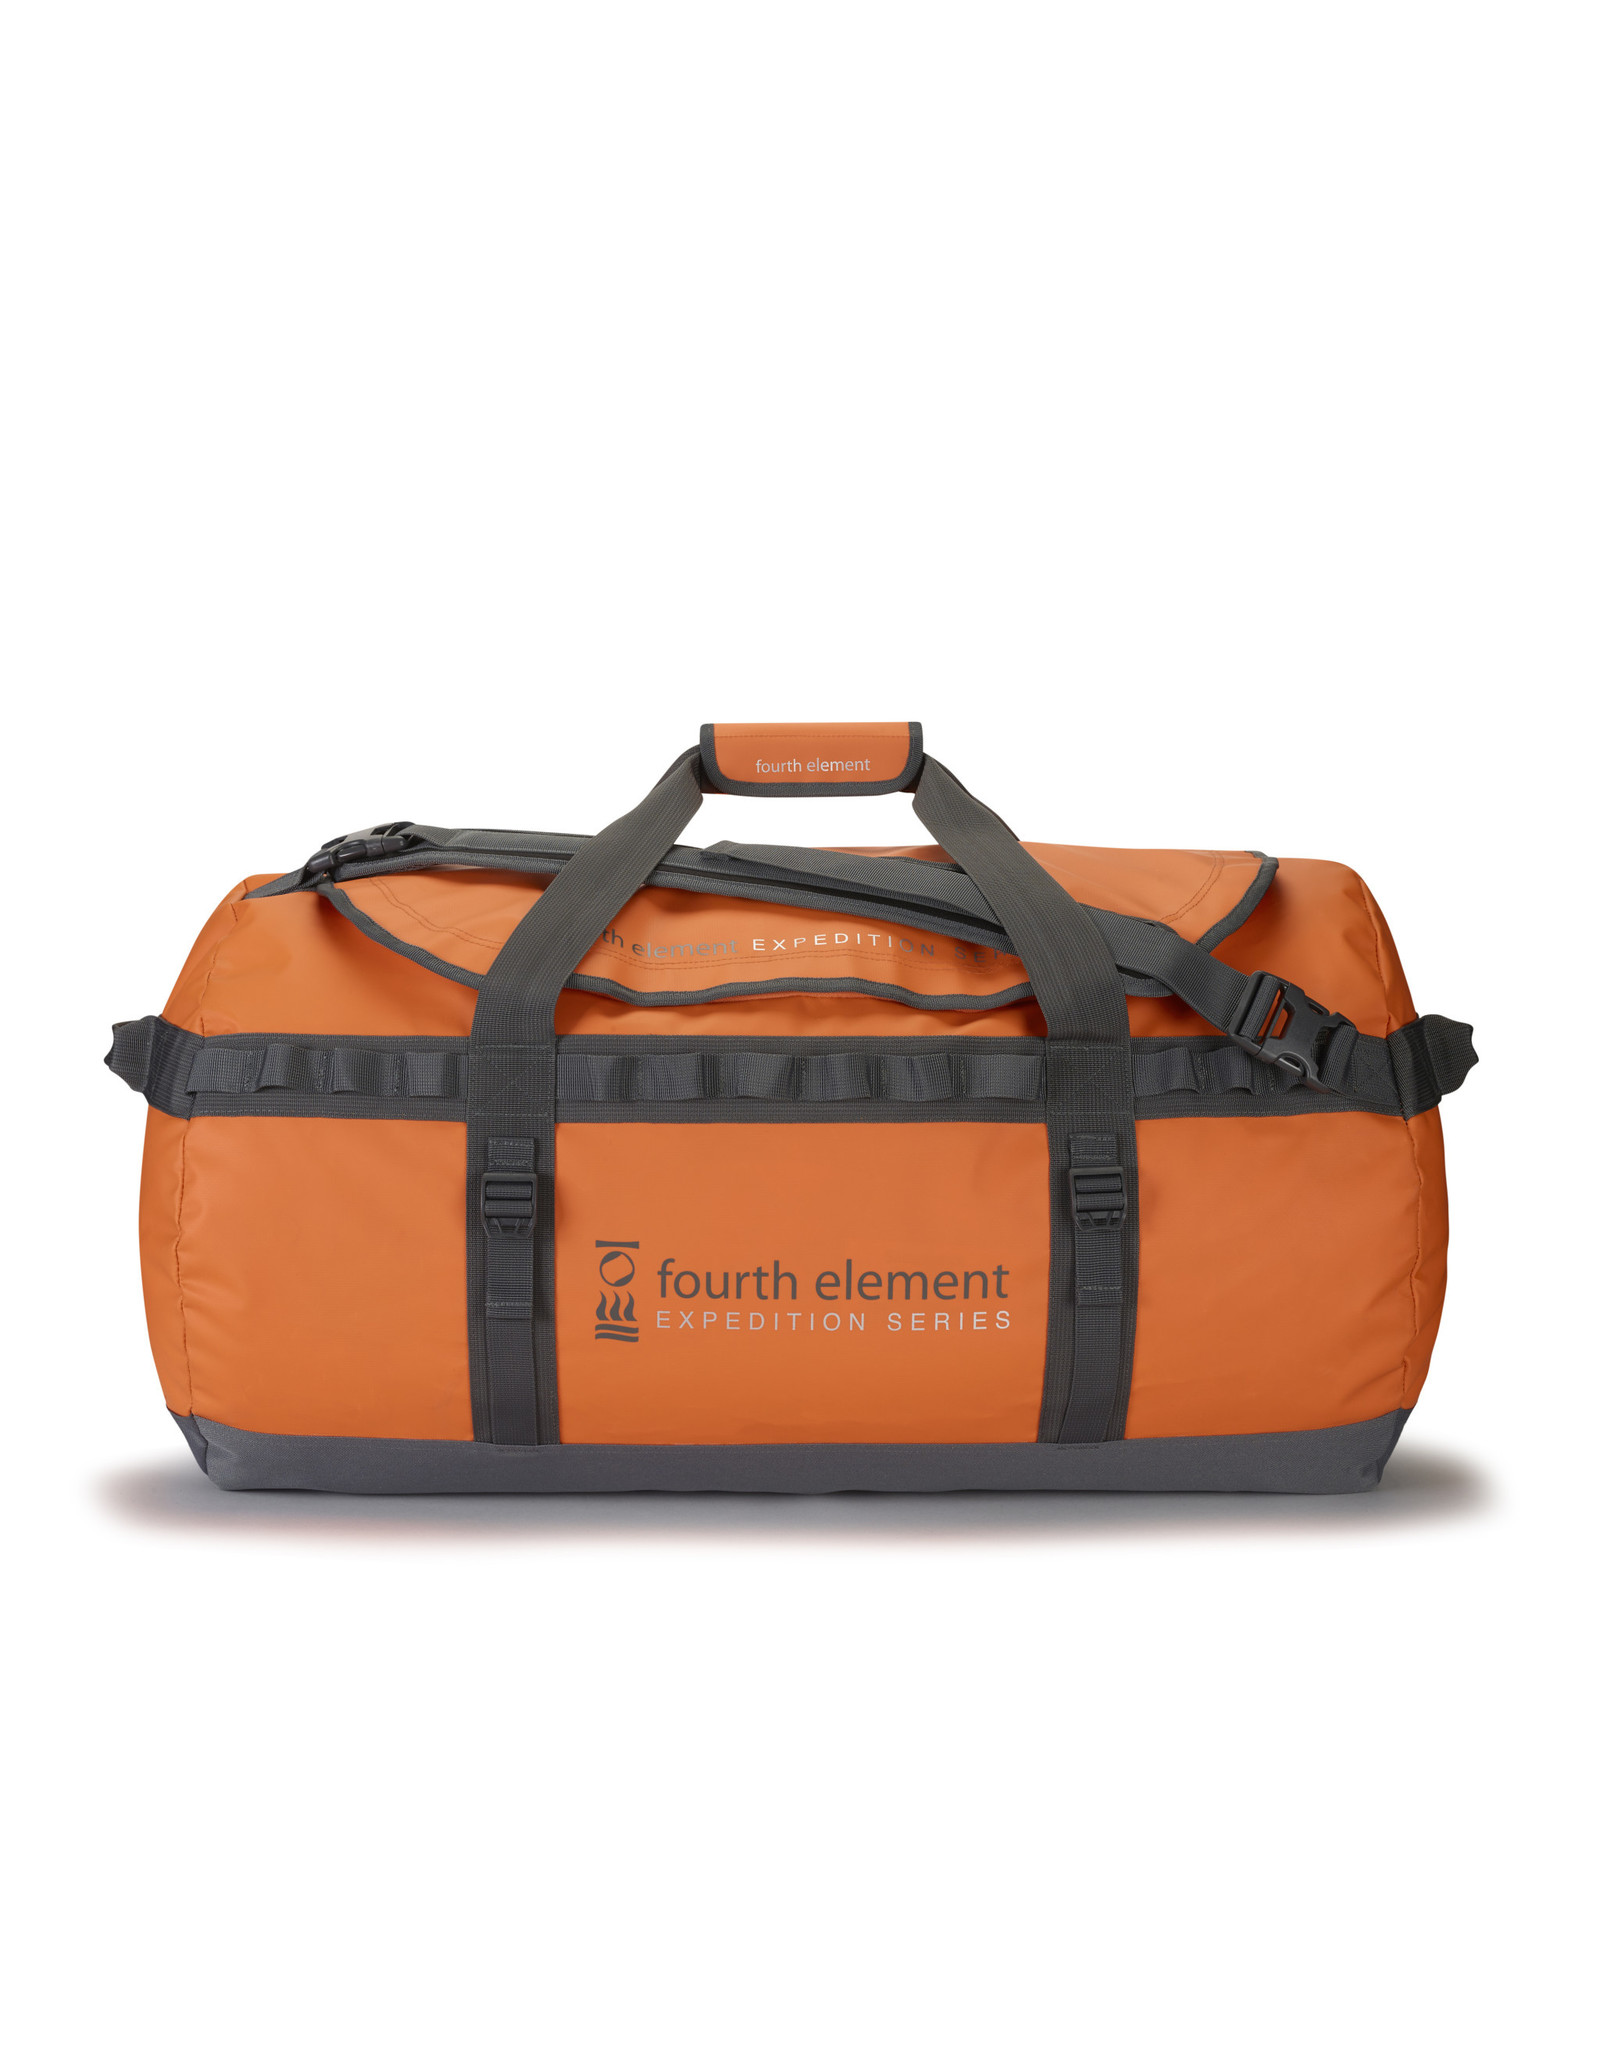 Fourth Element Fourth Element Expedition Series Duffel Bag 90L - Orange